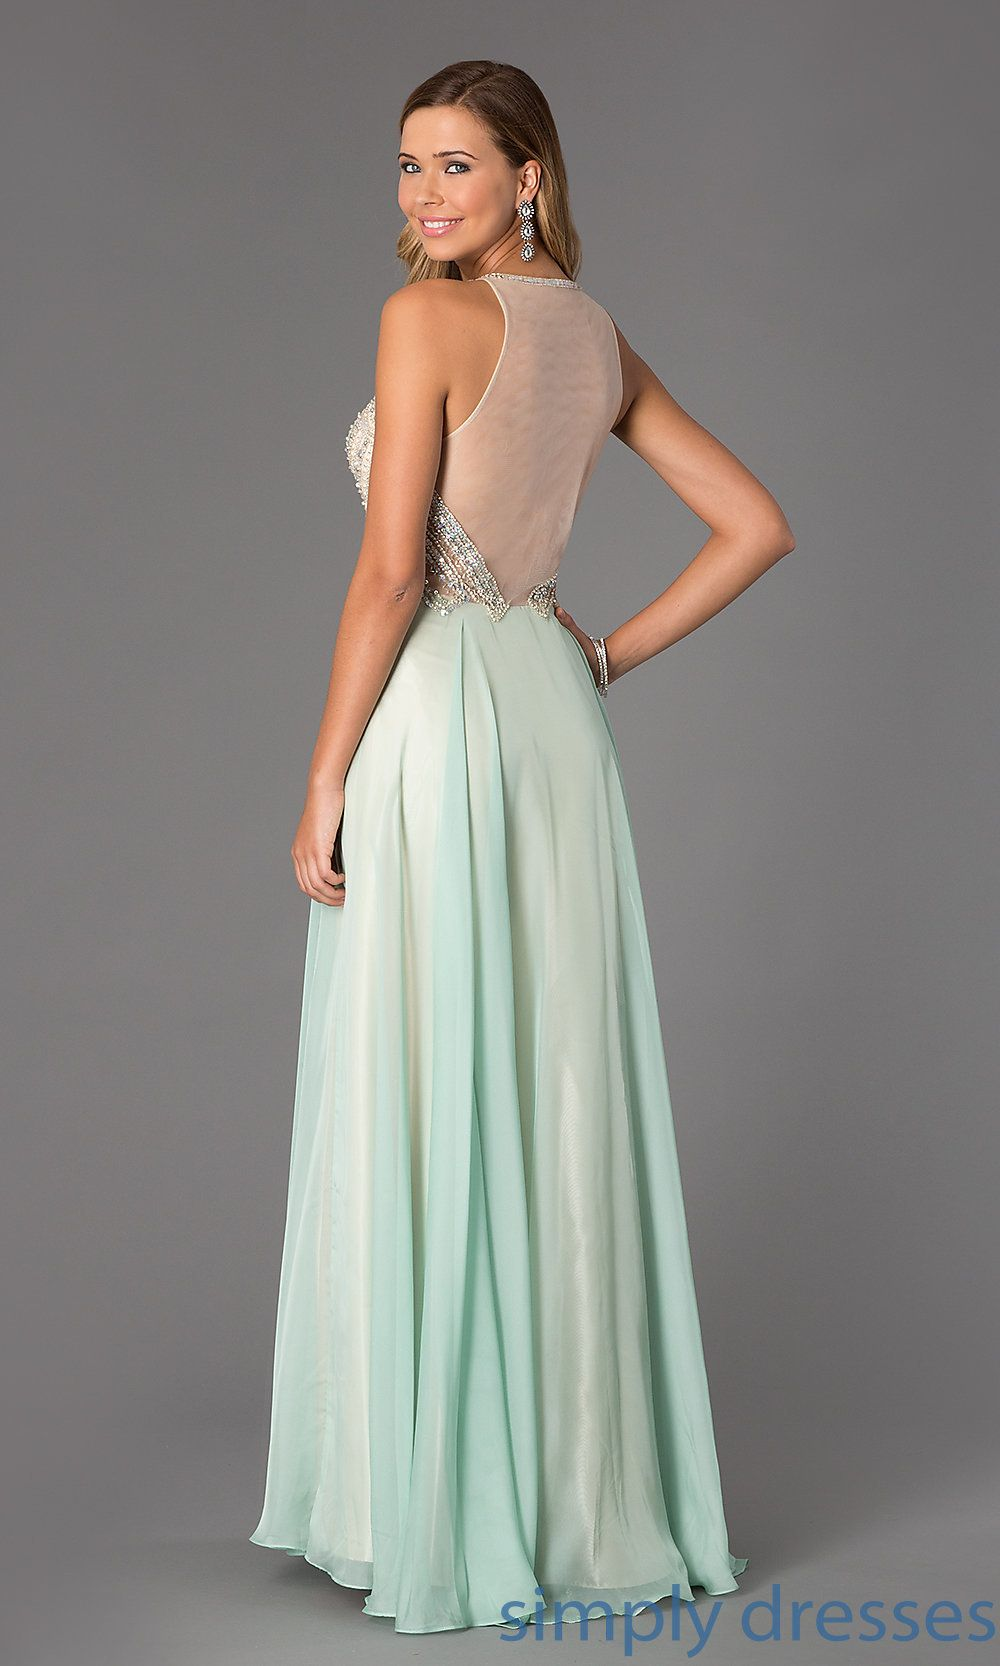 View dress detail dj gown pinterest illusions and gowns